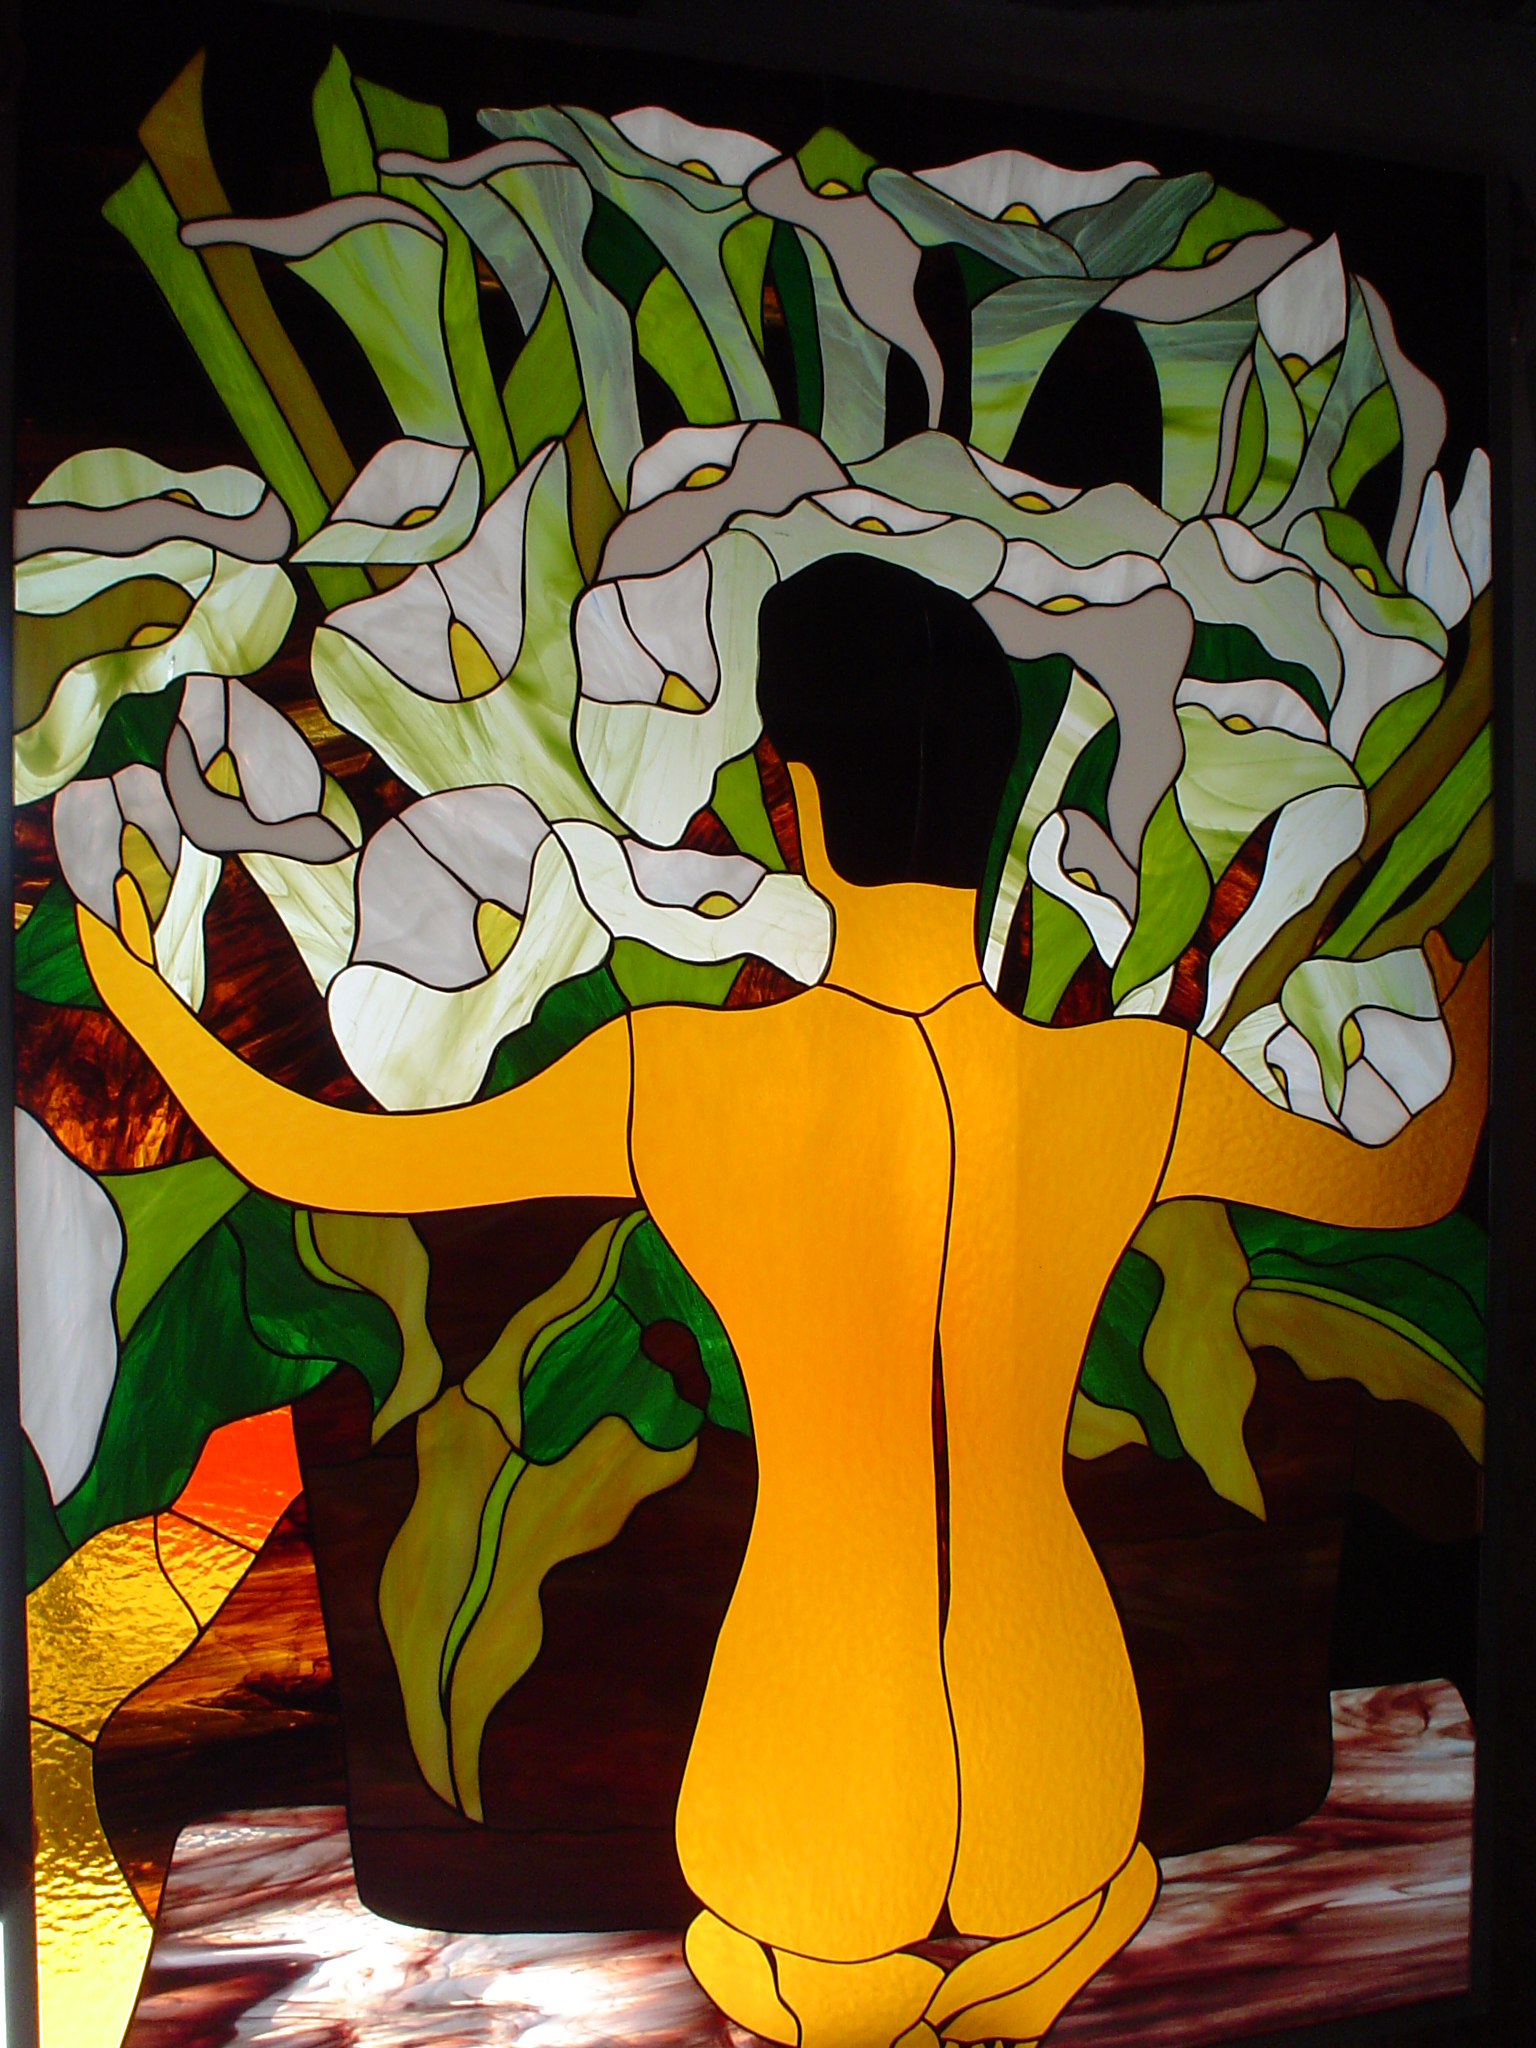 Vendedora de Alcatraces del Maestro Diego Rivera. Vitral Tiffany